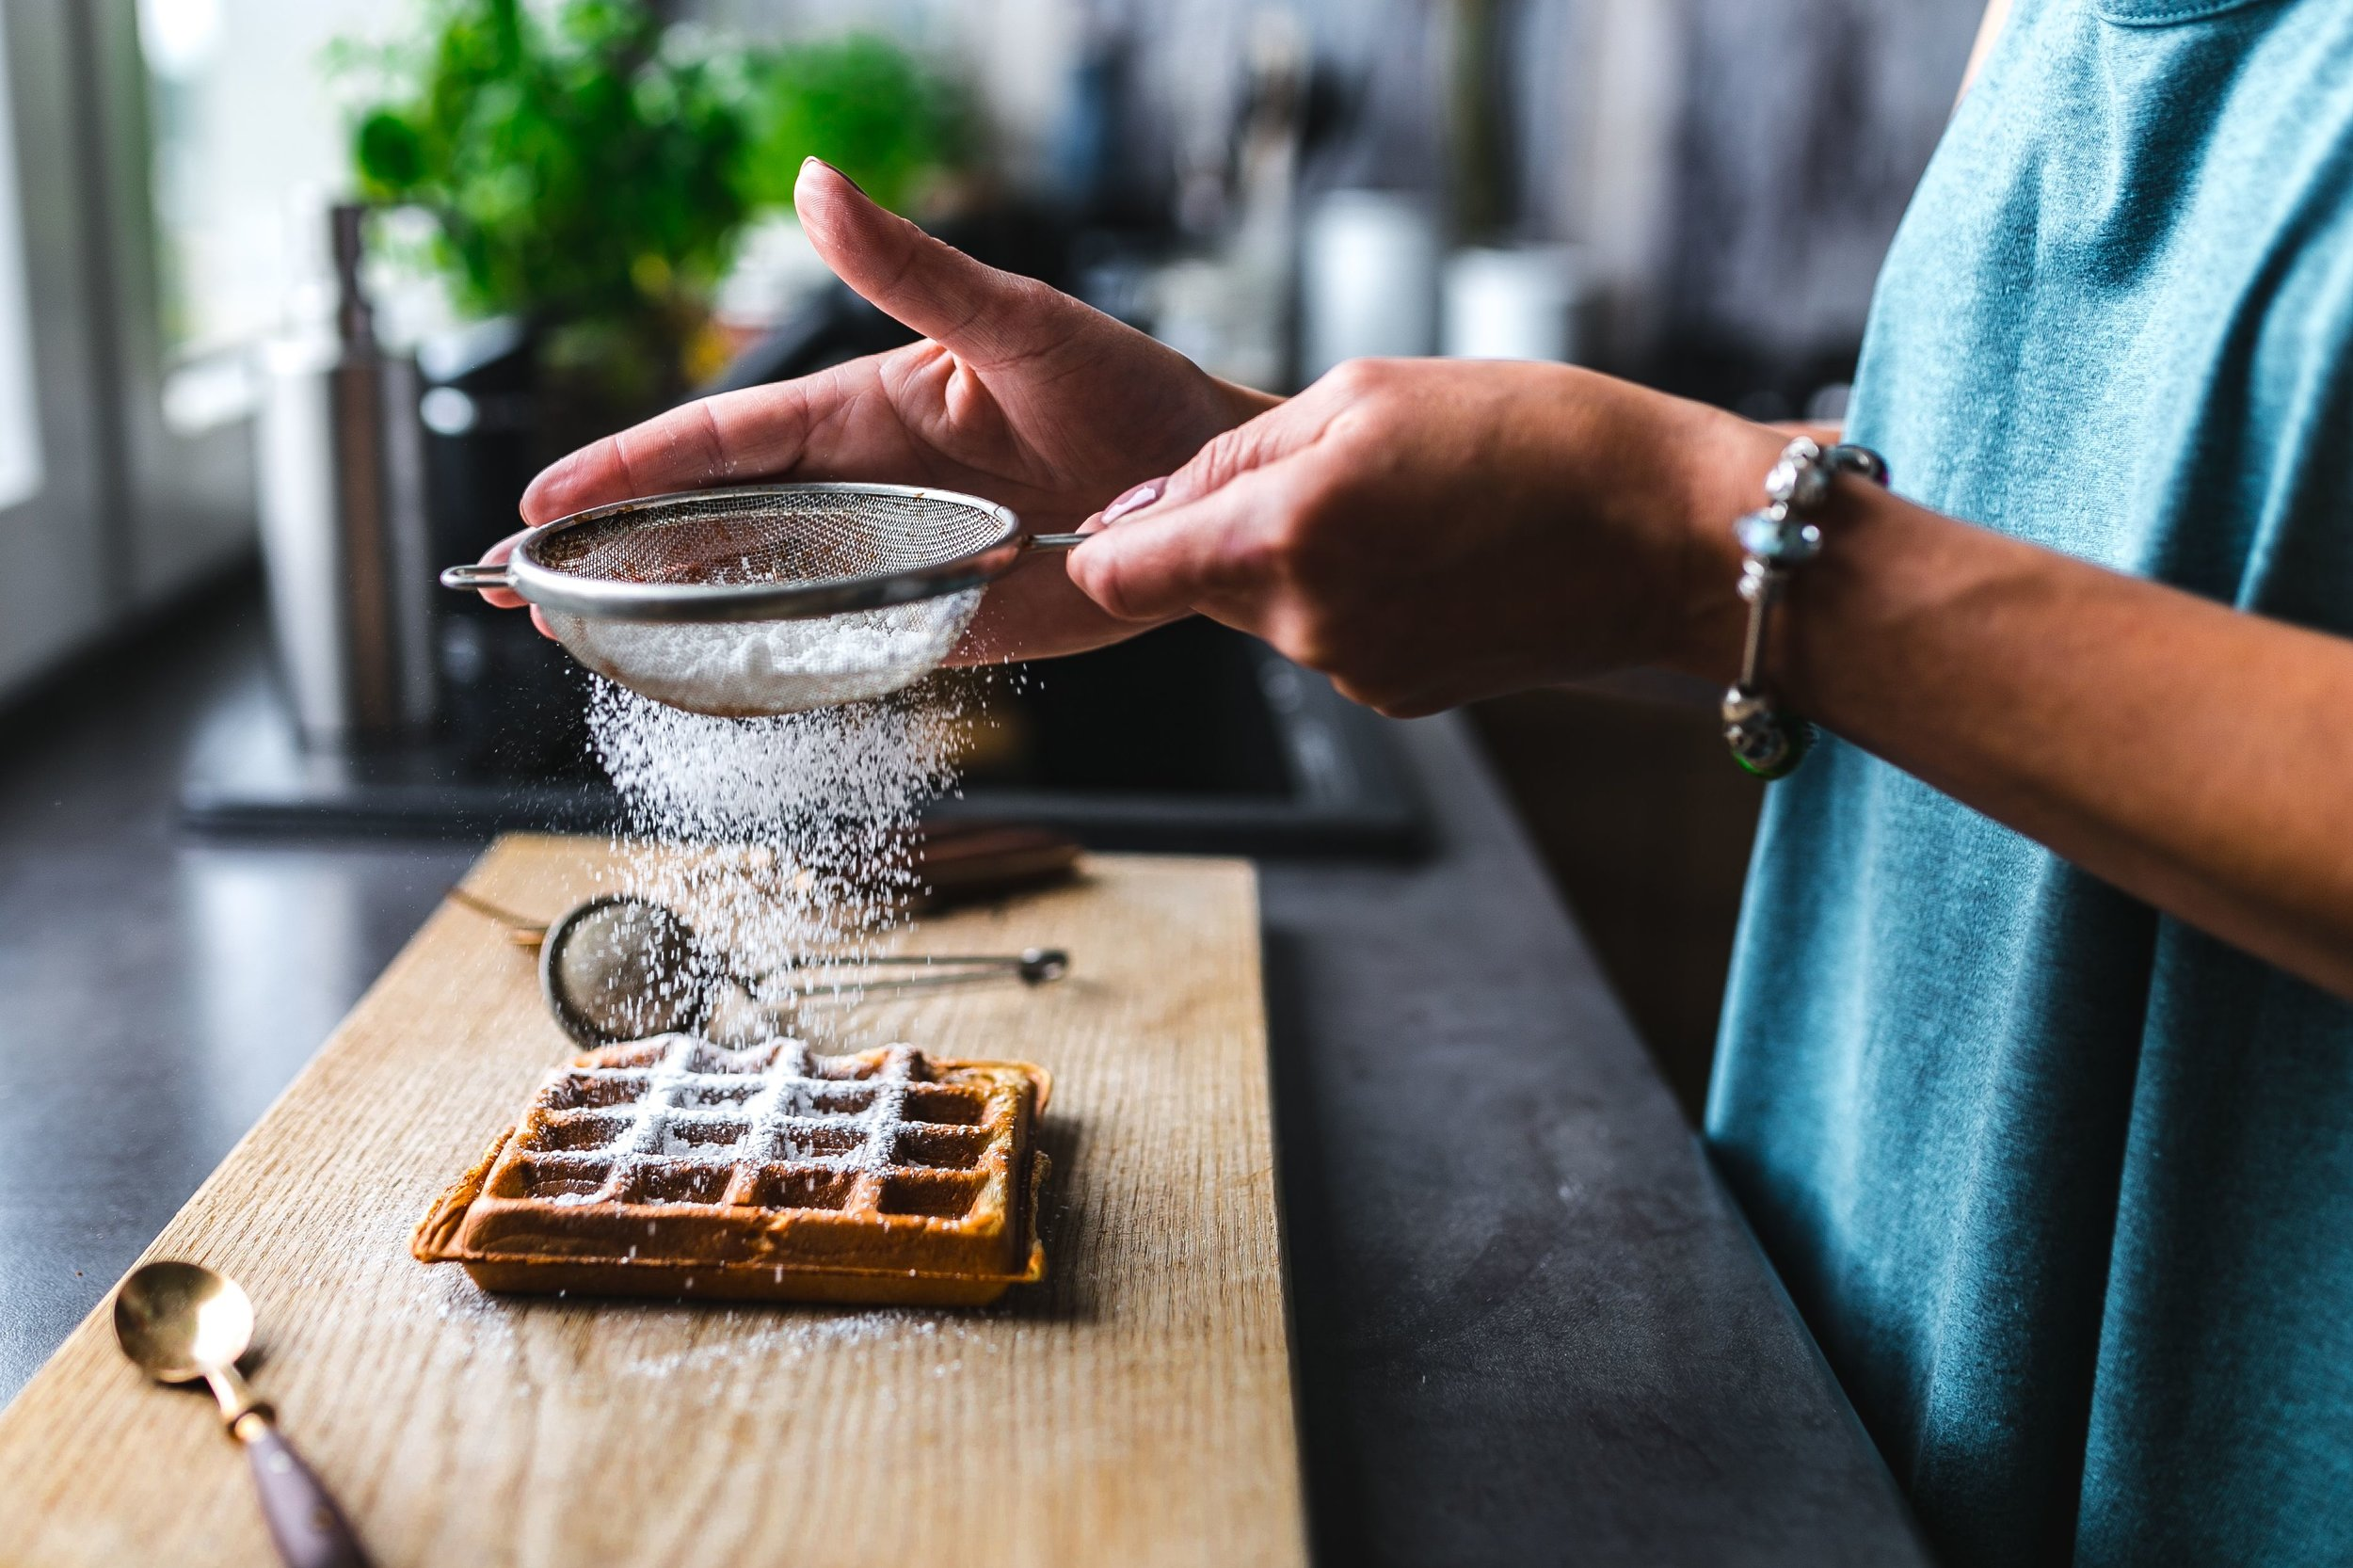 foodiesfeed.com_woman-pouring-sugar-over-her-waffle.jpg